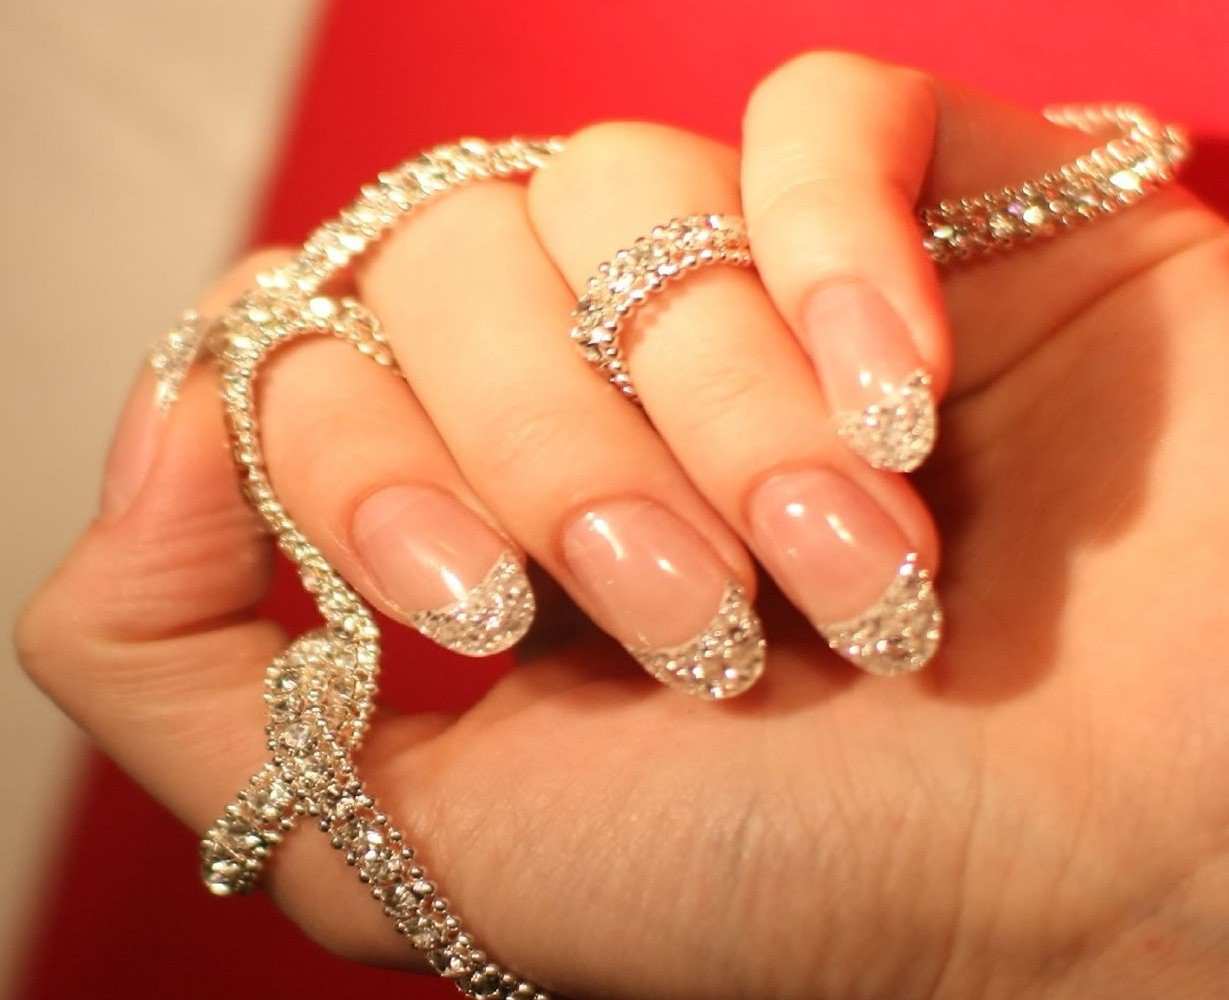 Easy And Effective Ways To Stop Biting Your Nails The